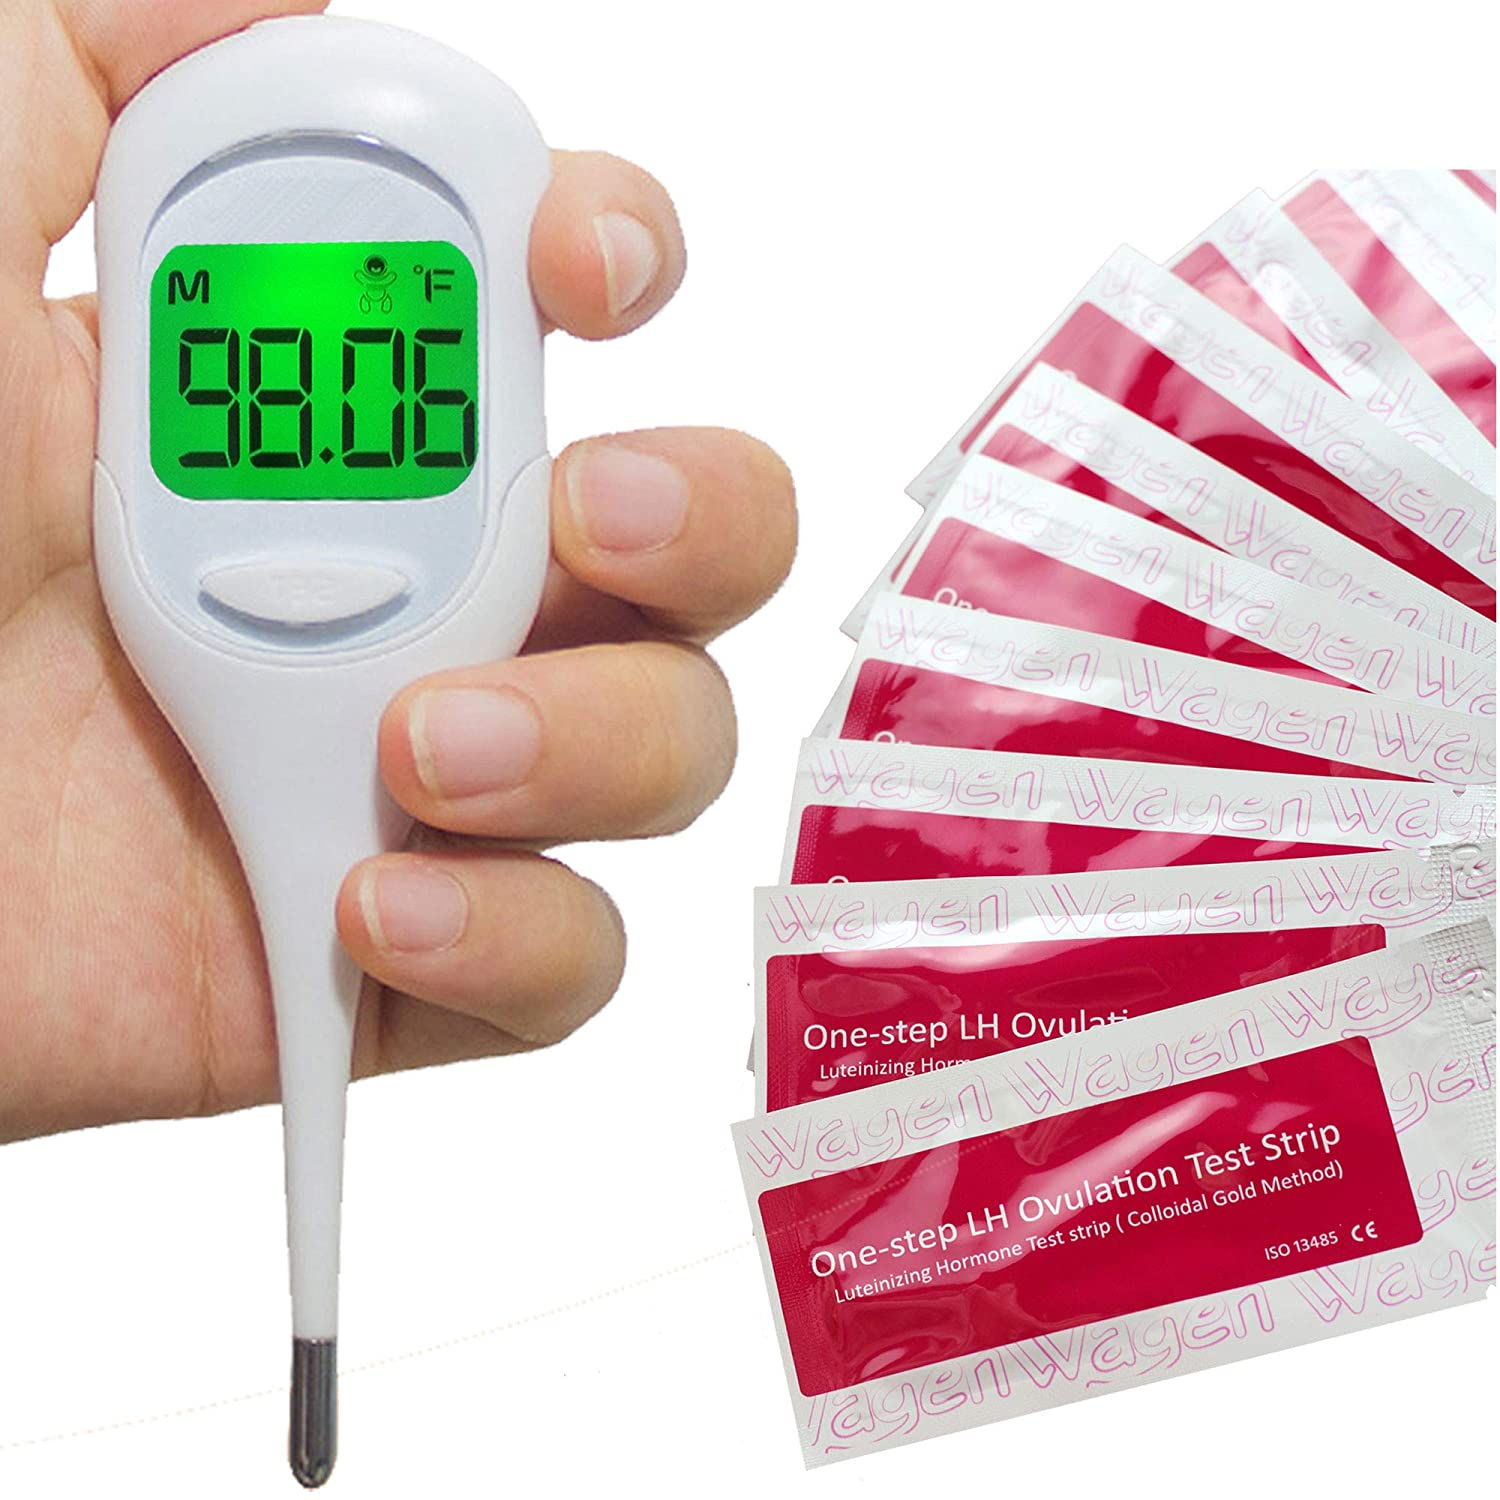 Basal Thermometer and 50 Ovulation (LH) Test Strips for TTC Women to Catch Perfect Ovulation and Get Pregnant Naturally DBT-1